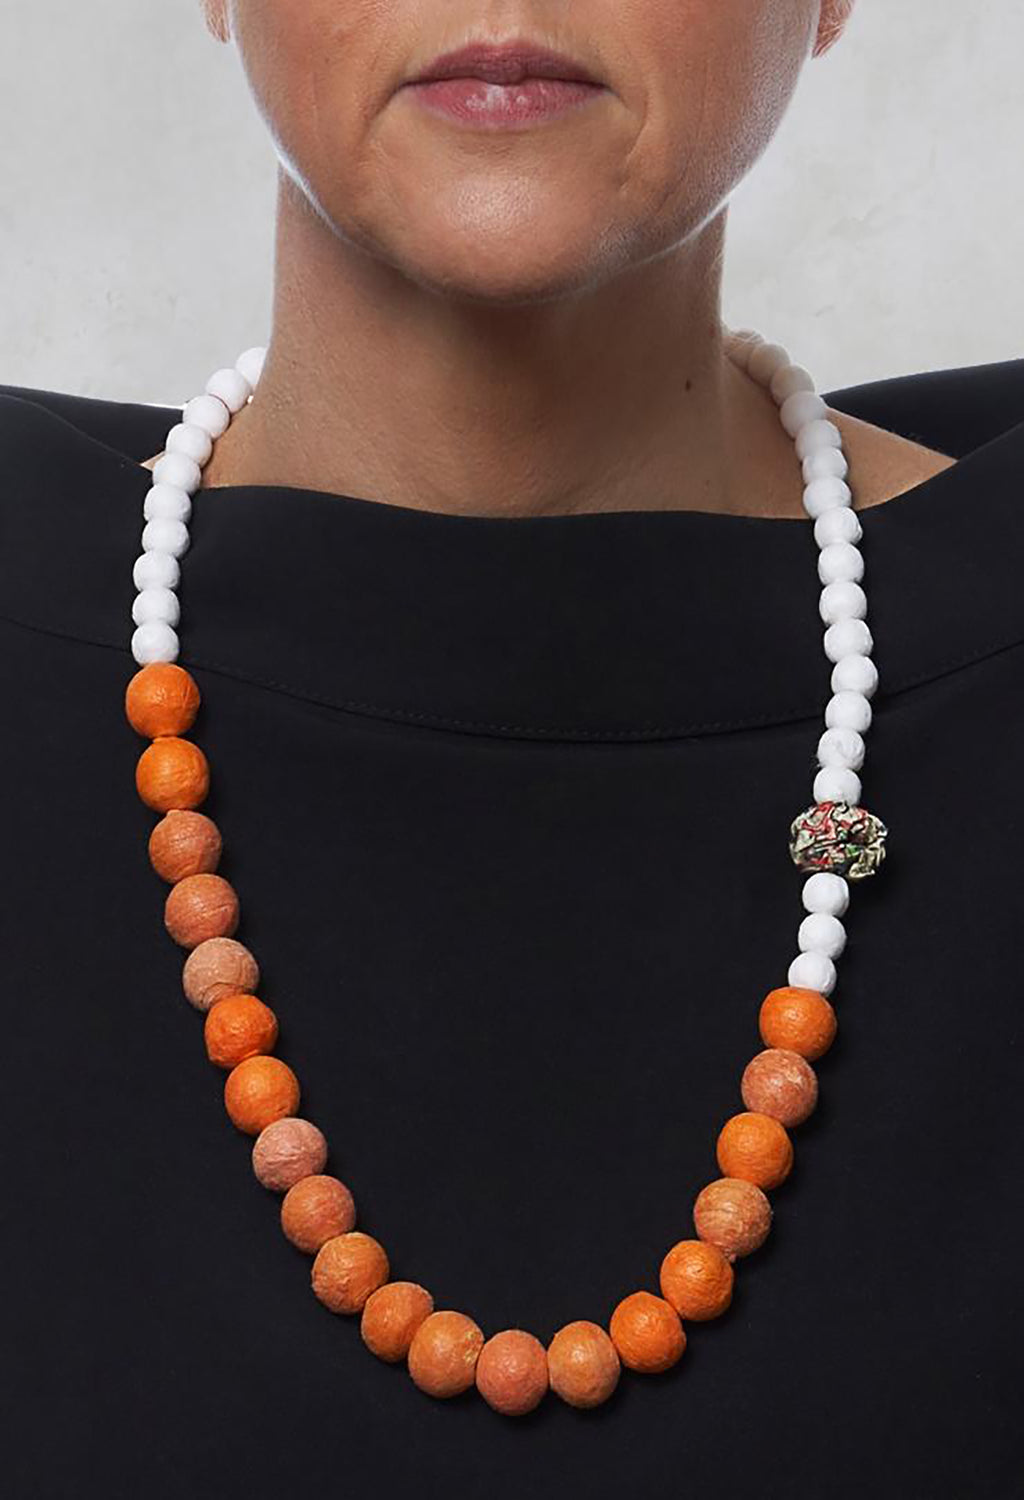 Beaded Necklace with Paper Mache Ball in Orange/White